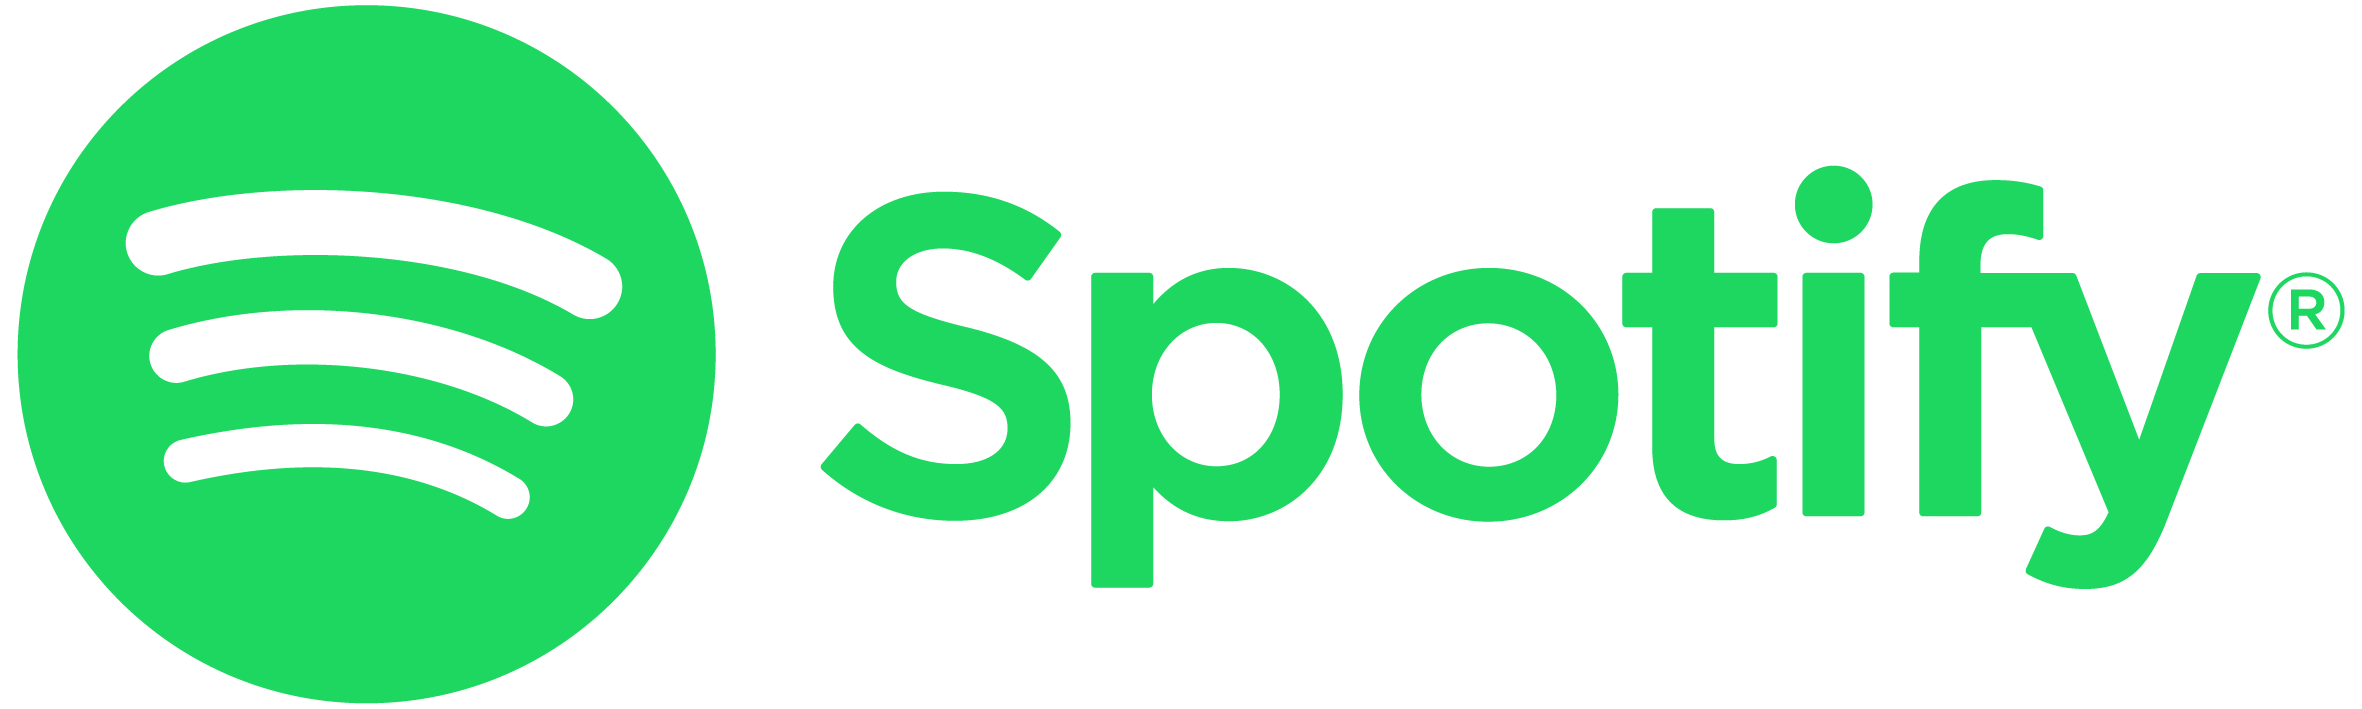 podcast - spotify transparent.png